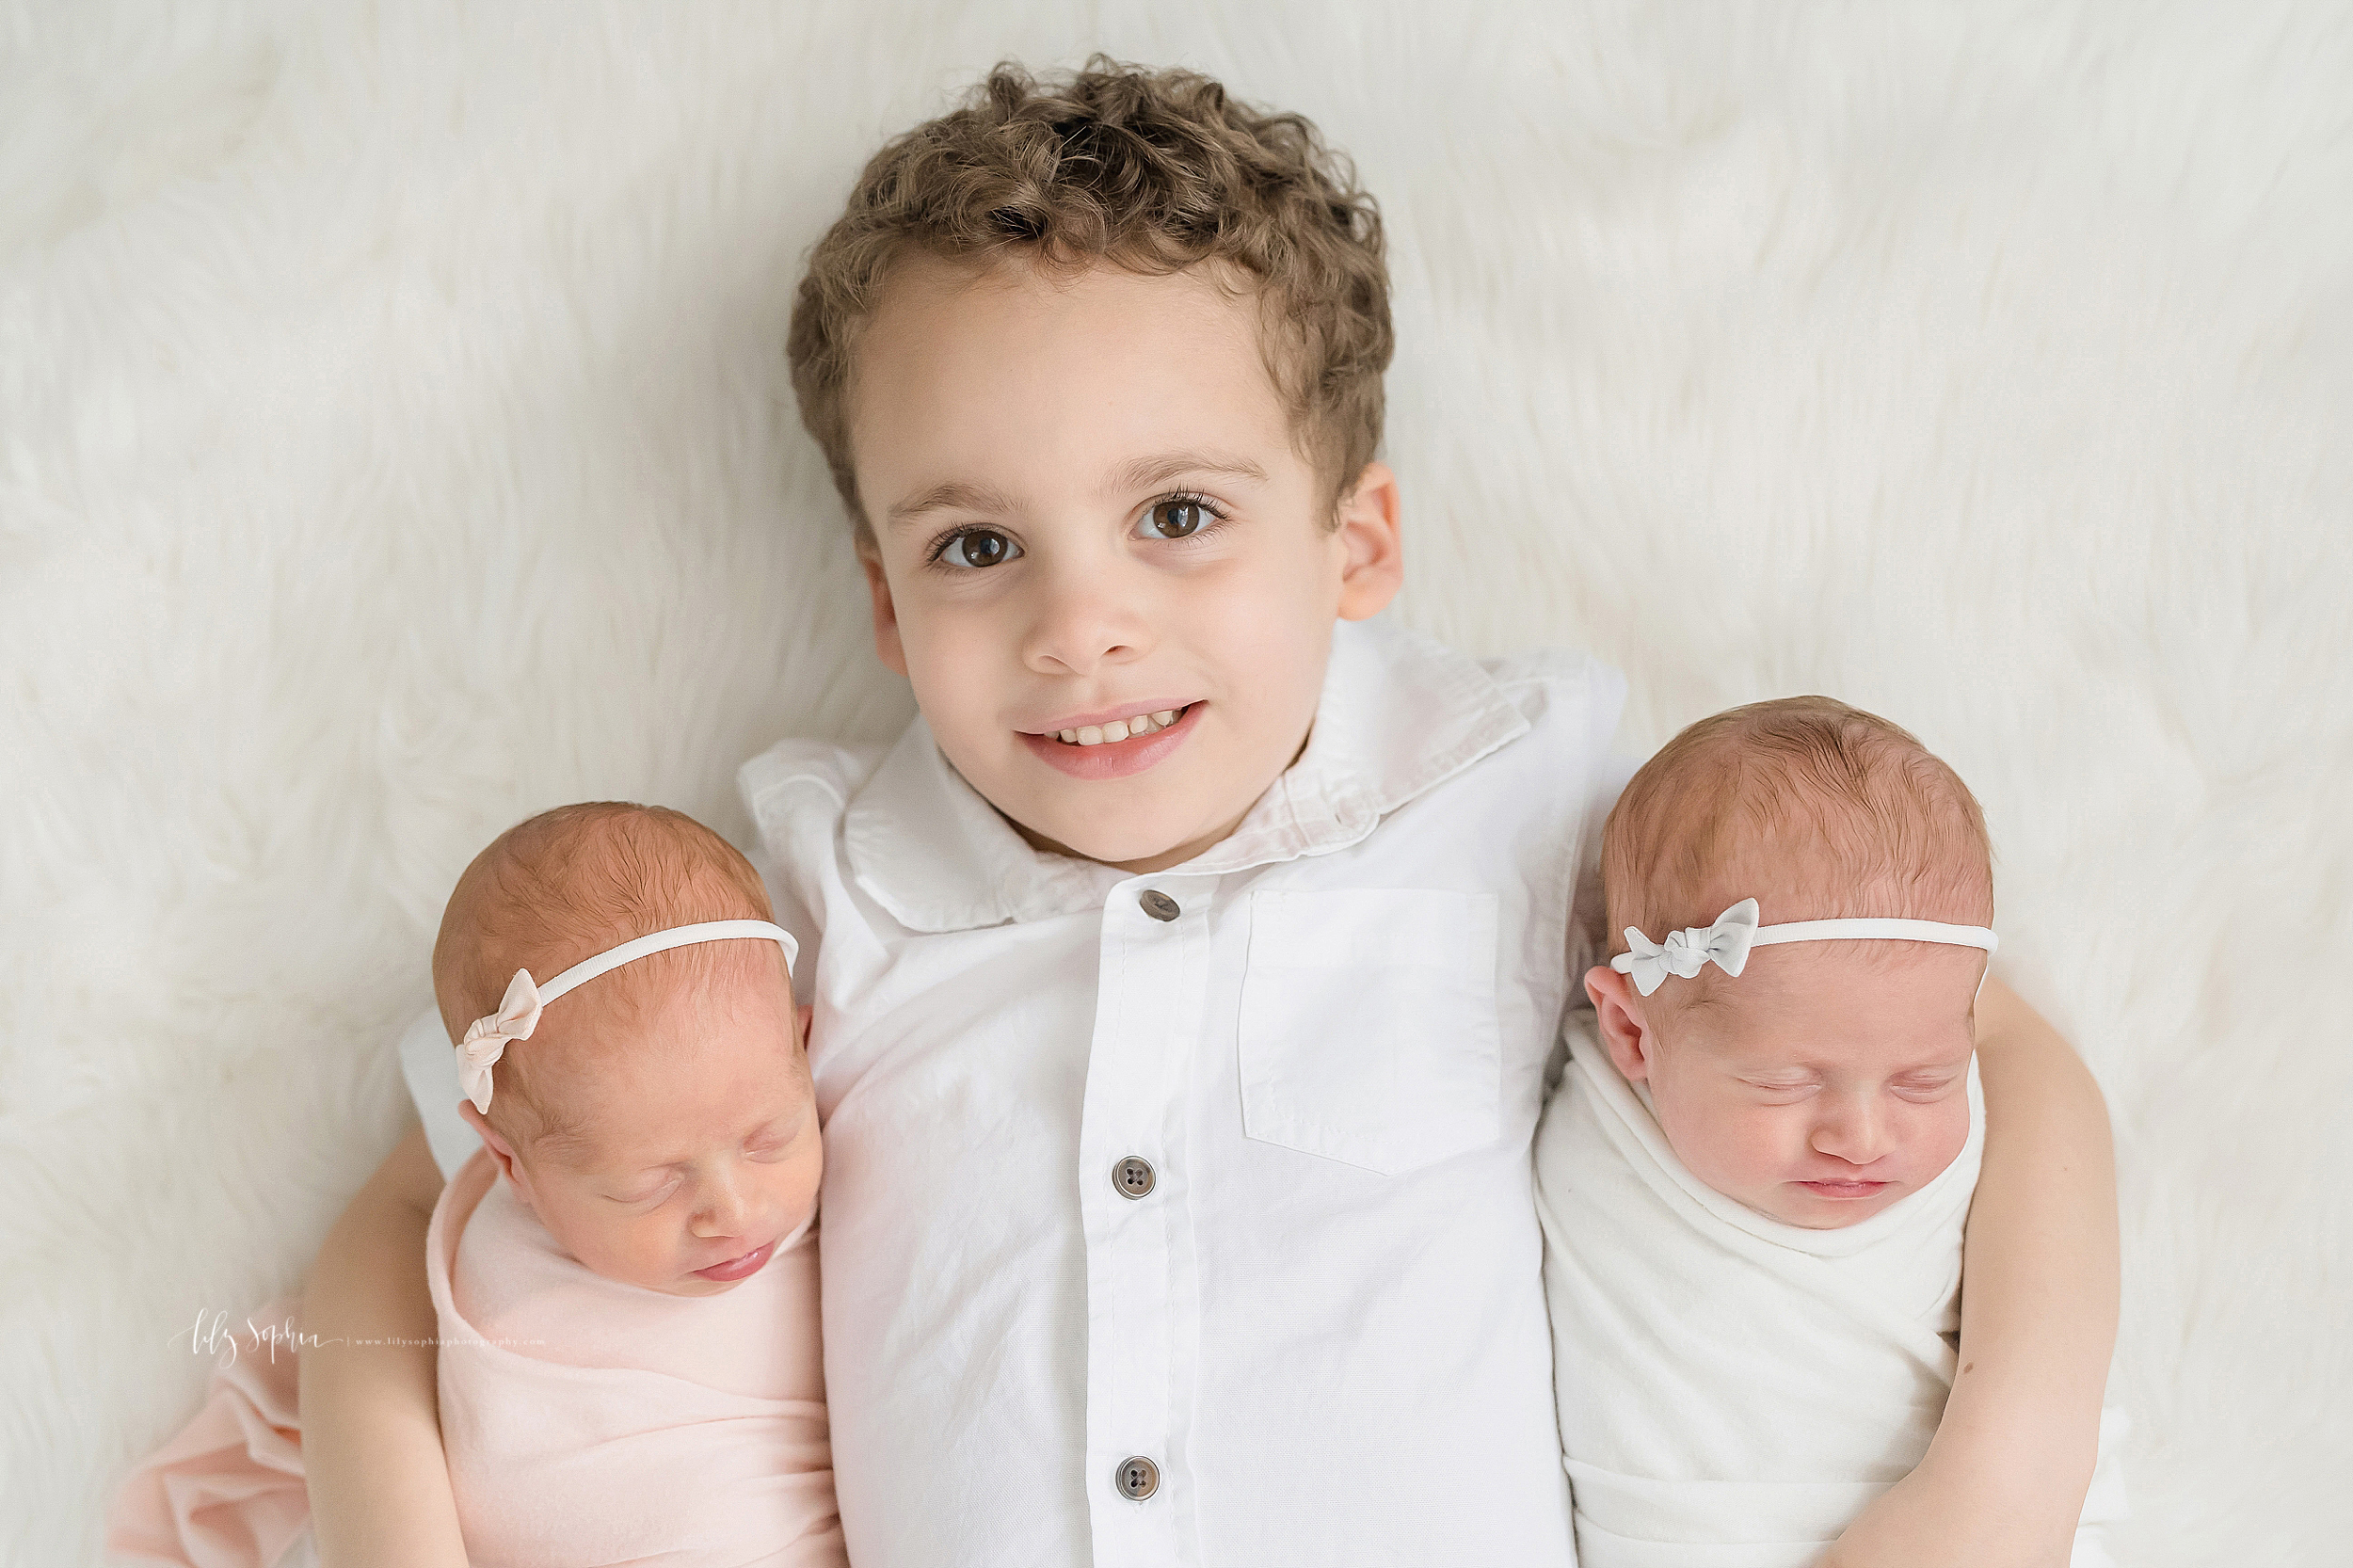 atlanta-decatur-candler-park-sandy-springs-buckhead-virginia-highlands-west-end-decatur-lily-sophia-photography-identical-twin-baby-newborn-girls-toddler-big-brother-family-photos_2053.jpg